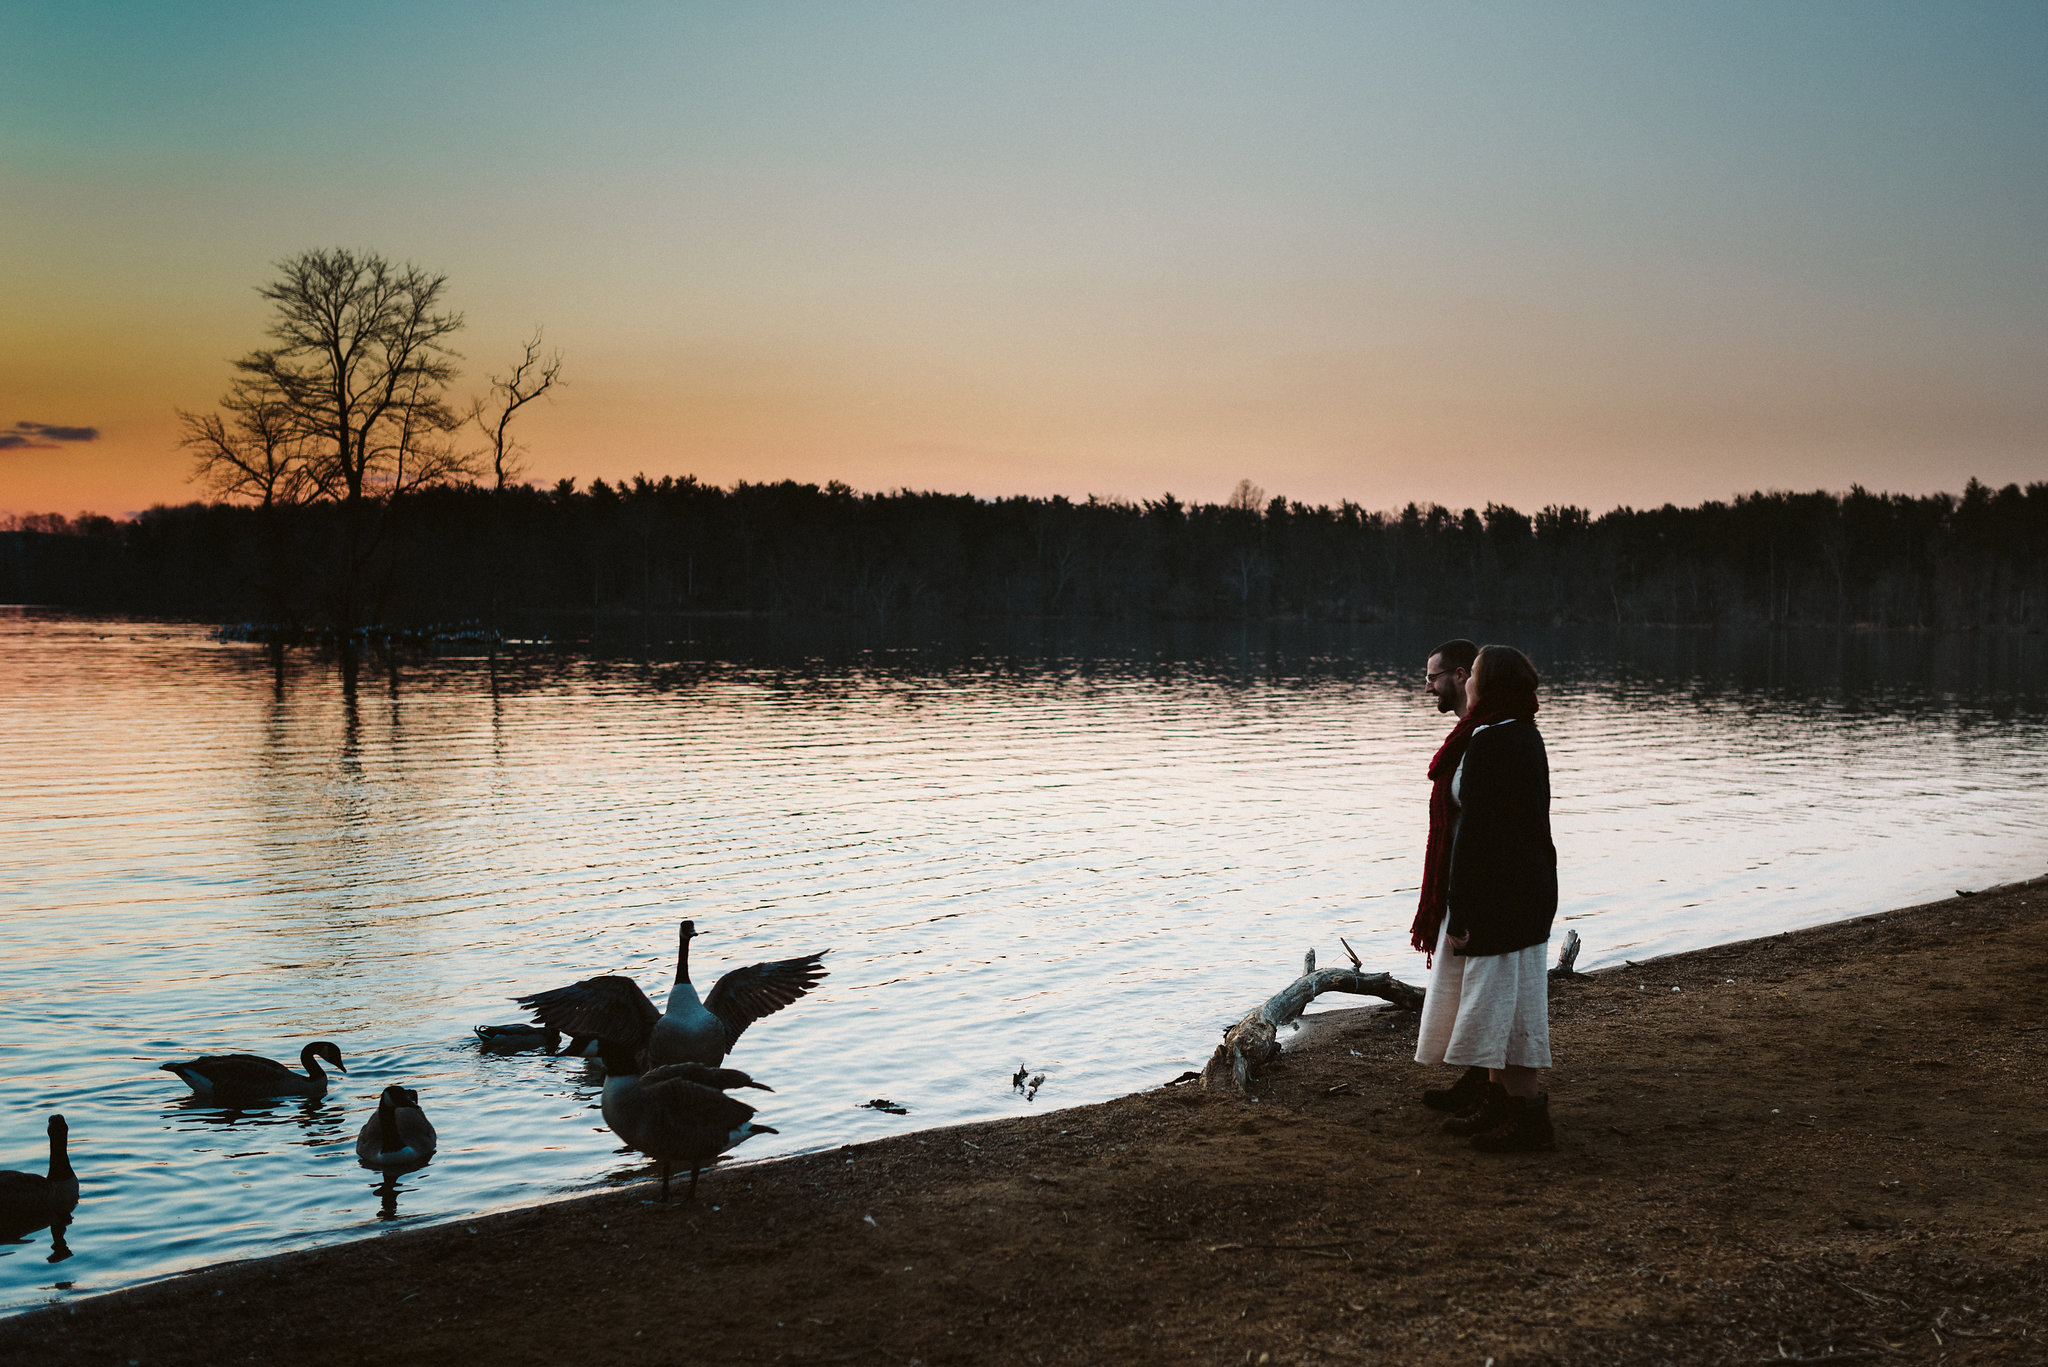 Baltimore County, Loch Raven Reservoir, Maryland Wedding Photographer, Winter, Engagement Photos, Nature, Romantic, Classic, Bride and Groom Standing Along Water During Sunset, Soft Colors, Wildlife